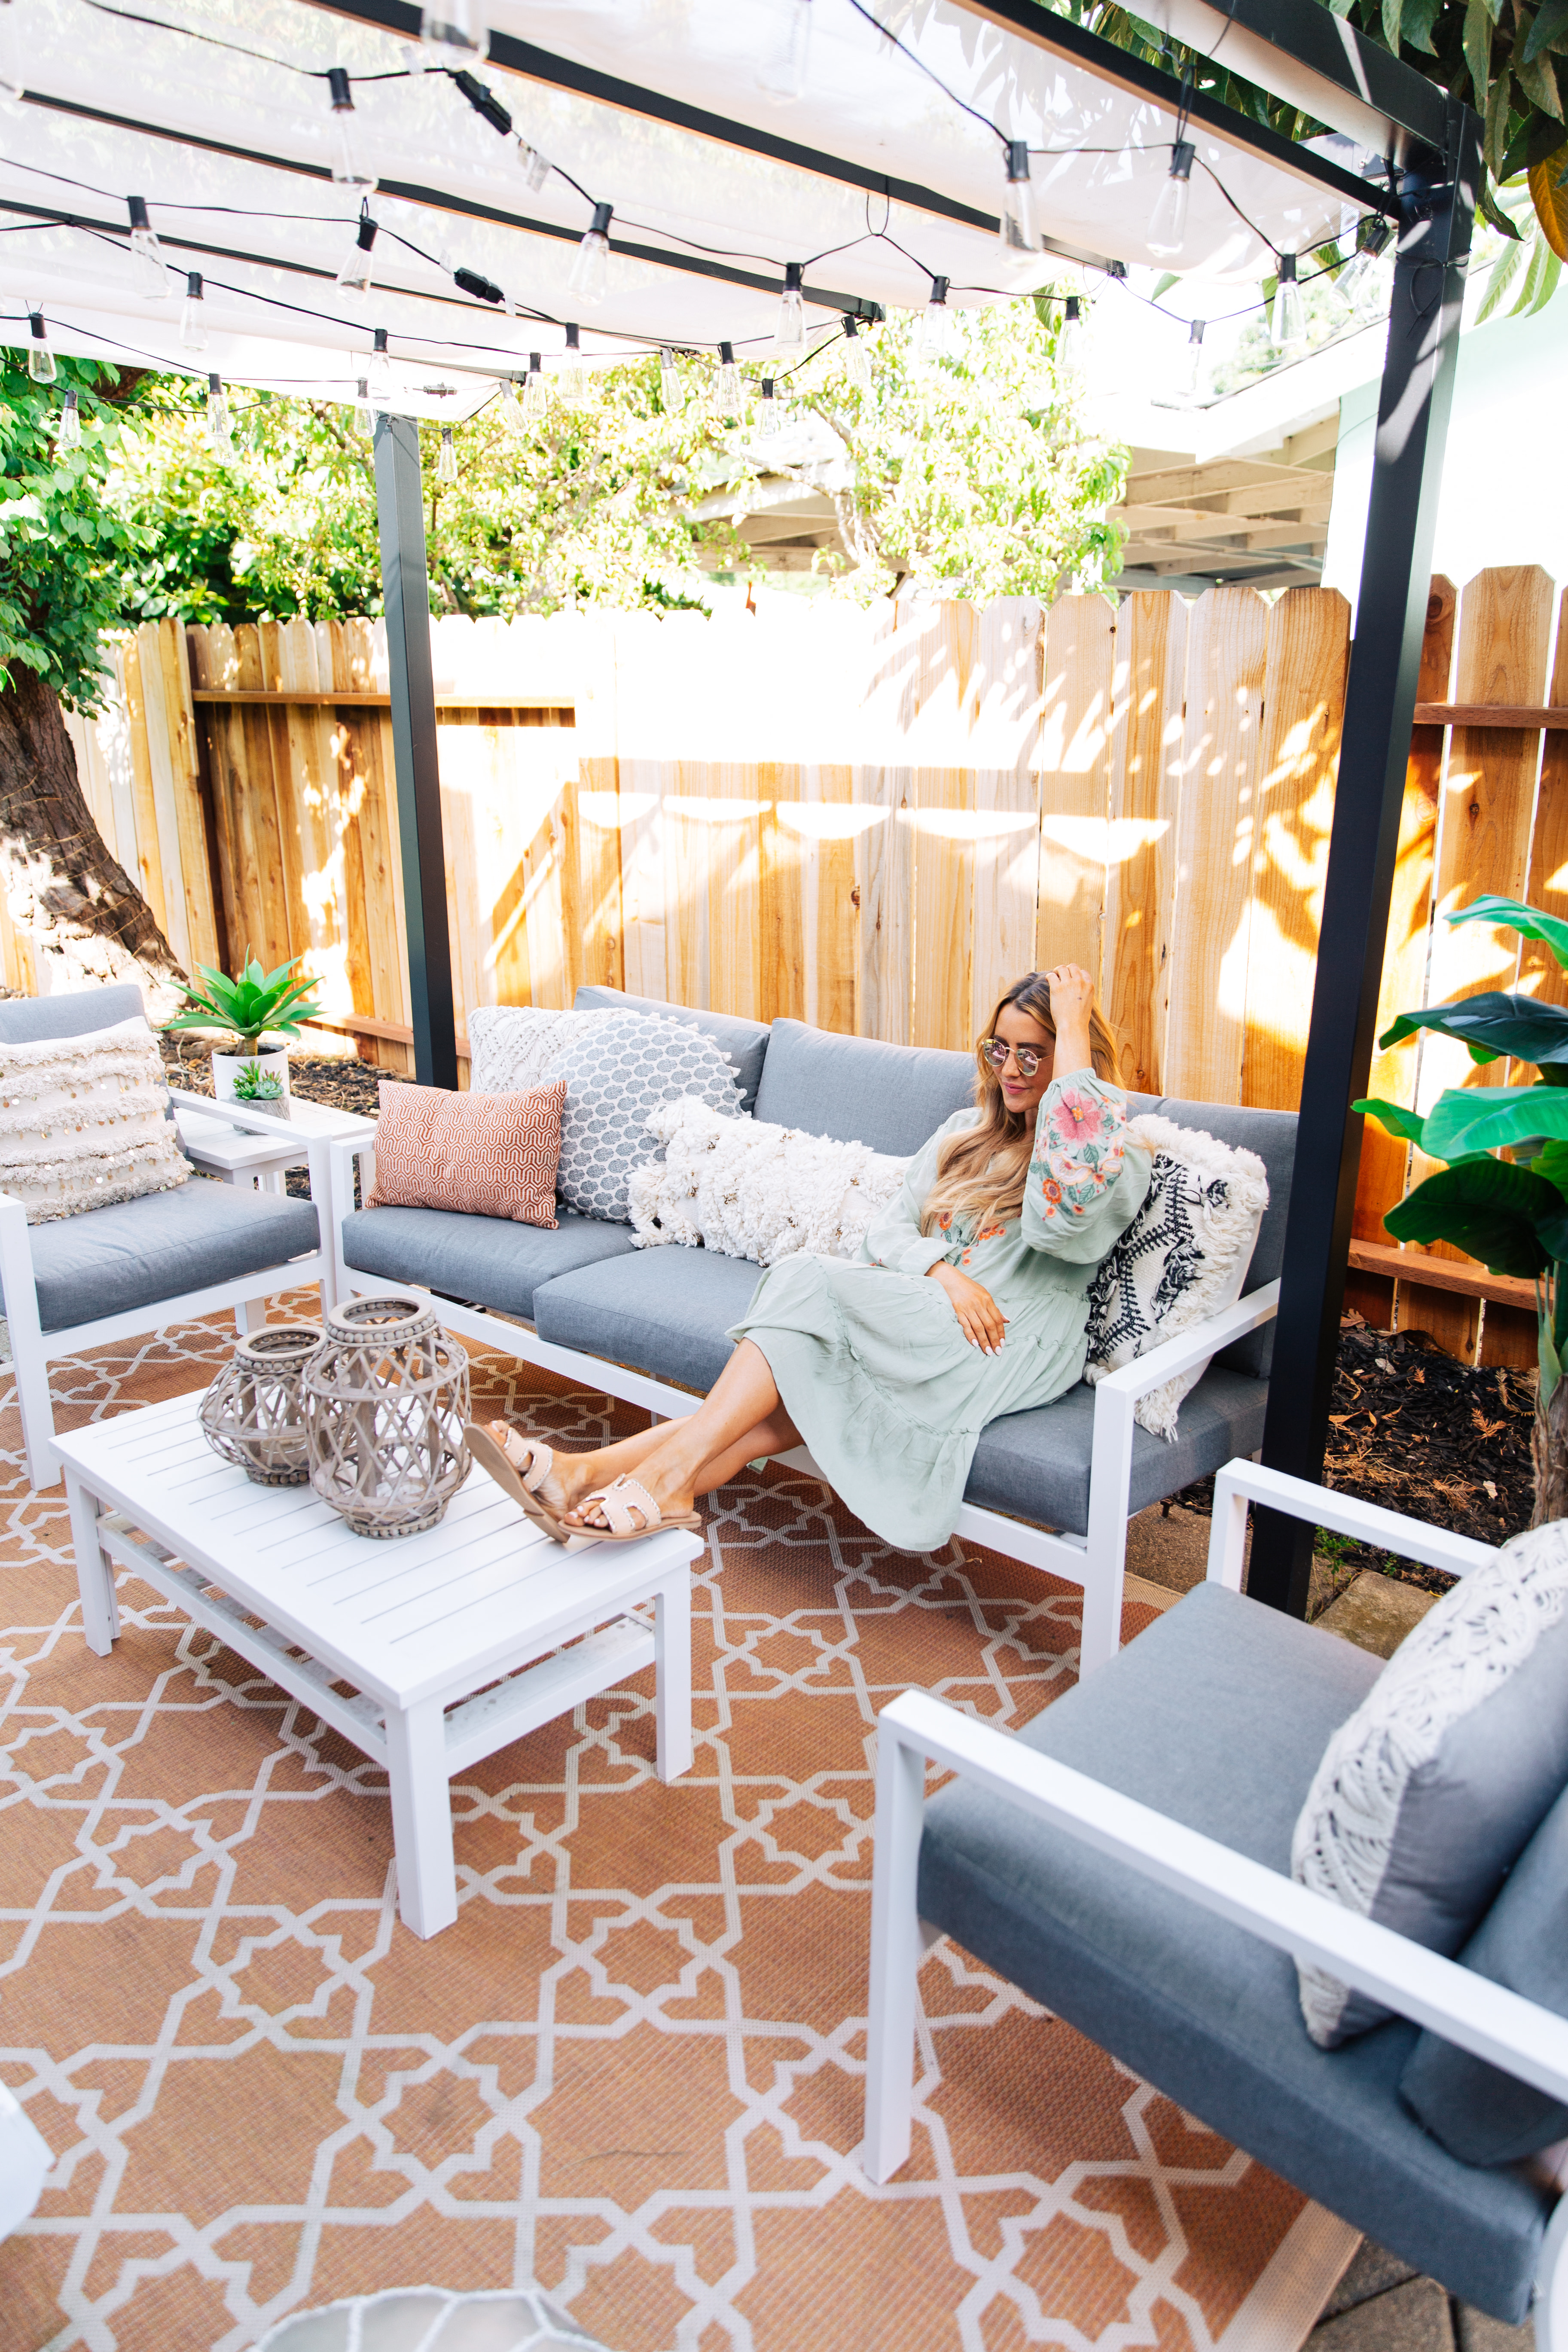 Outdoor Patio Ideas for the Summer with Yard Bird | For ... on Lawn Patio Ideas id=98621